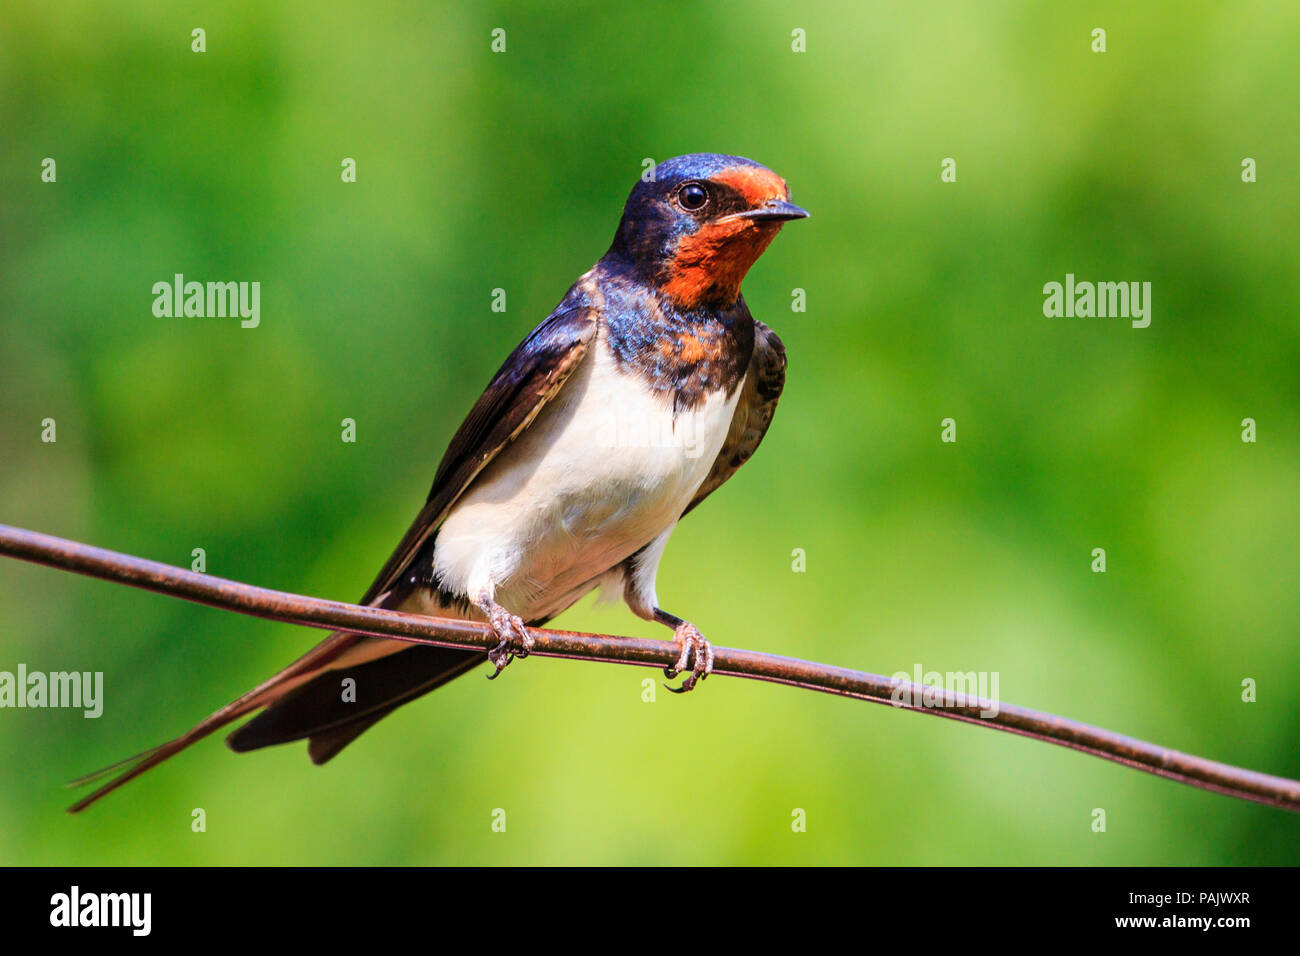 bird with a red mask sitting on a wire - Stock Image